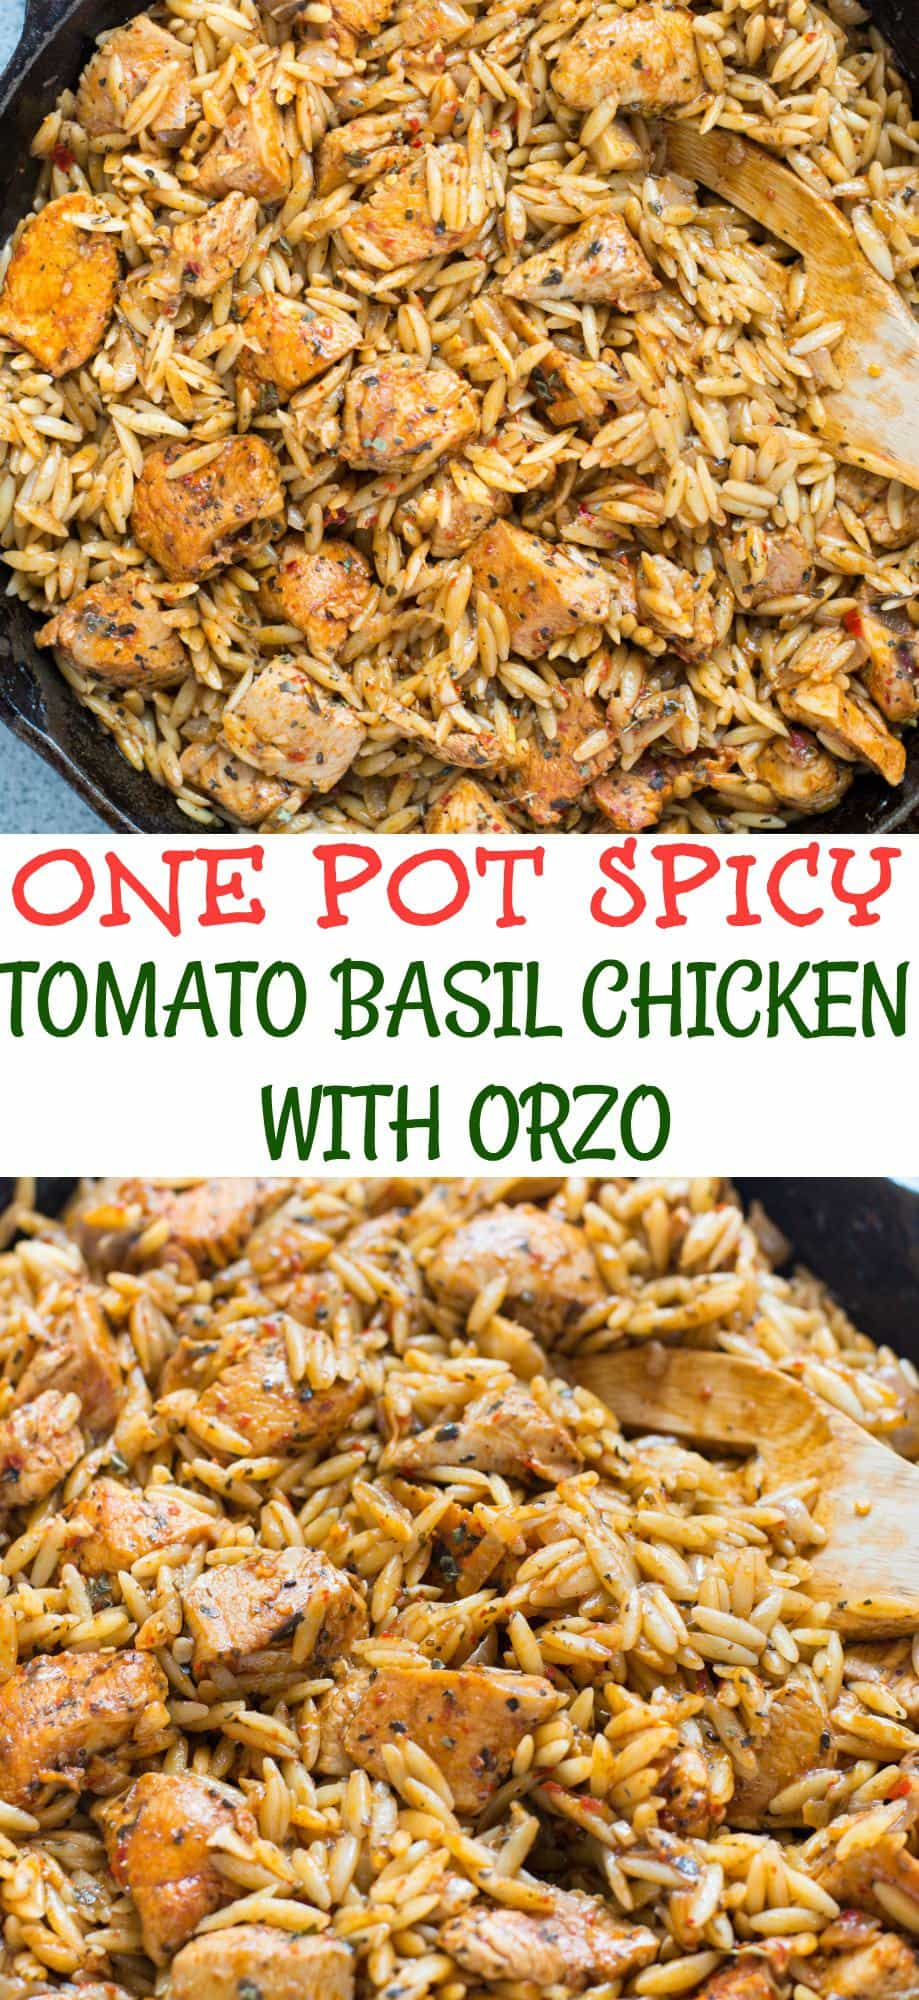 One Pot Spicy Tomato Basil Chicken With Orzo Recipe